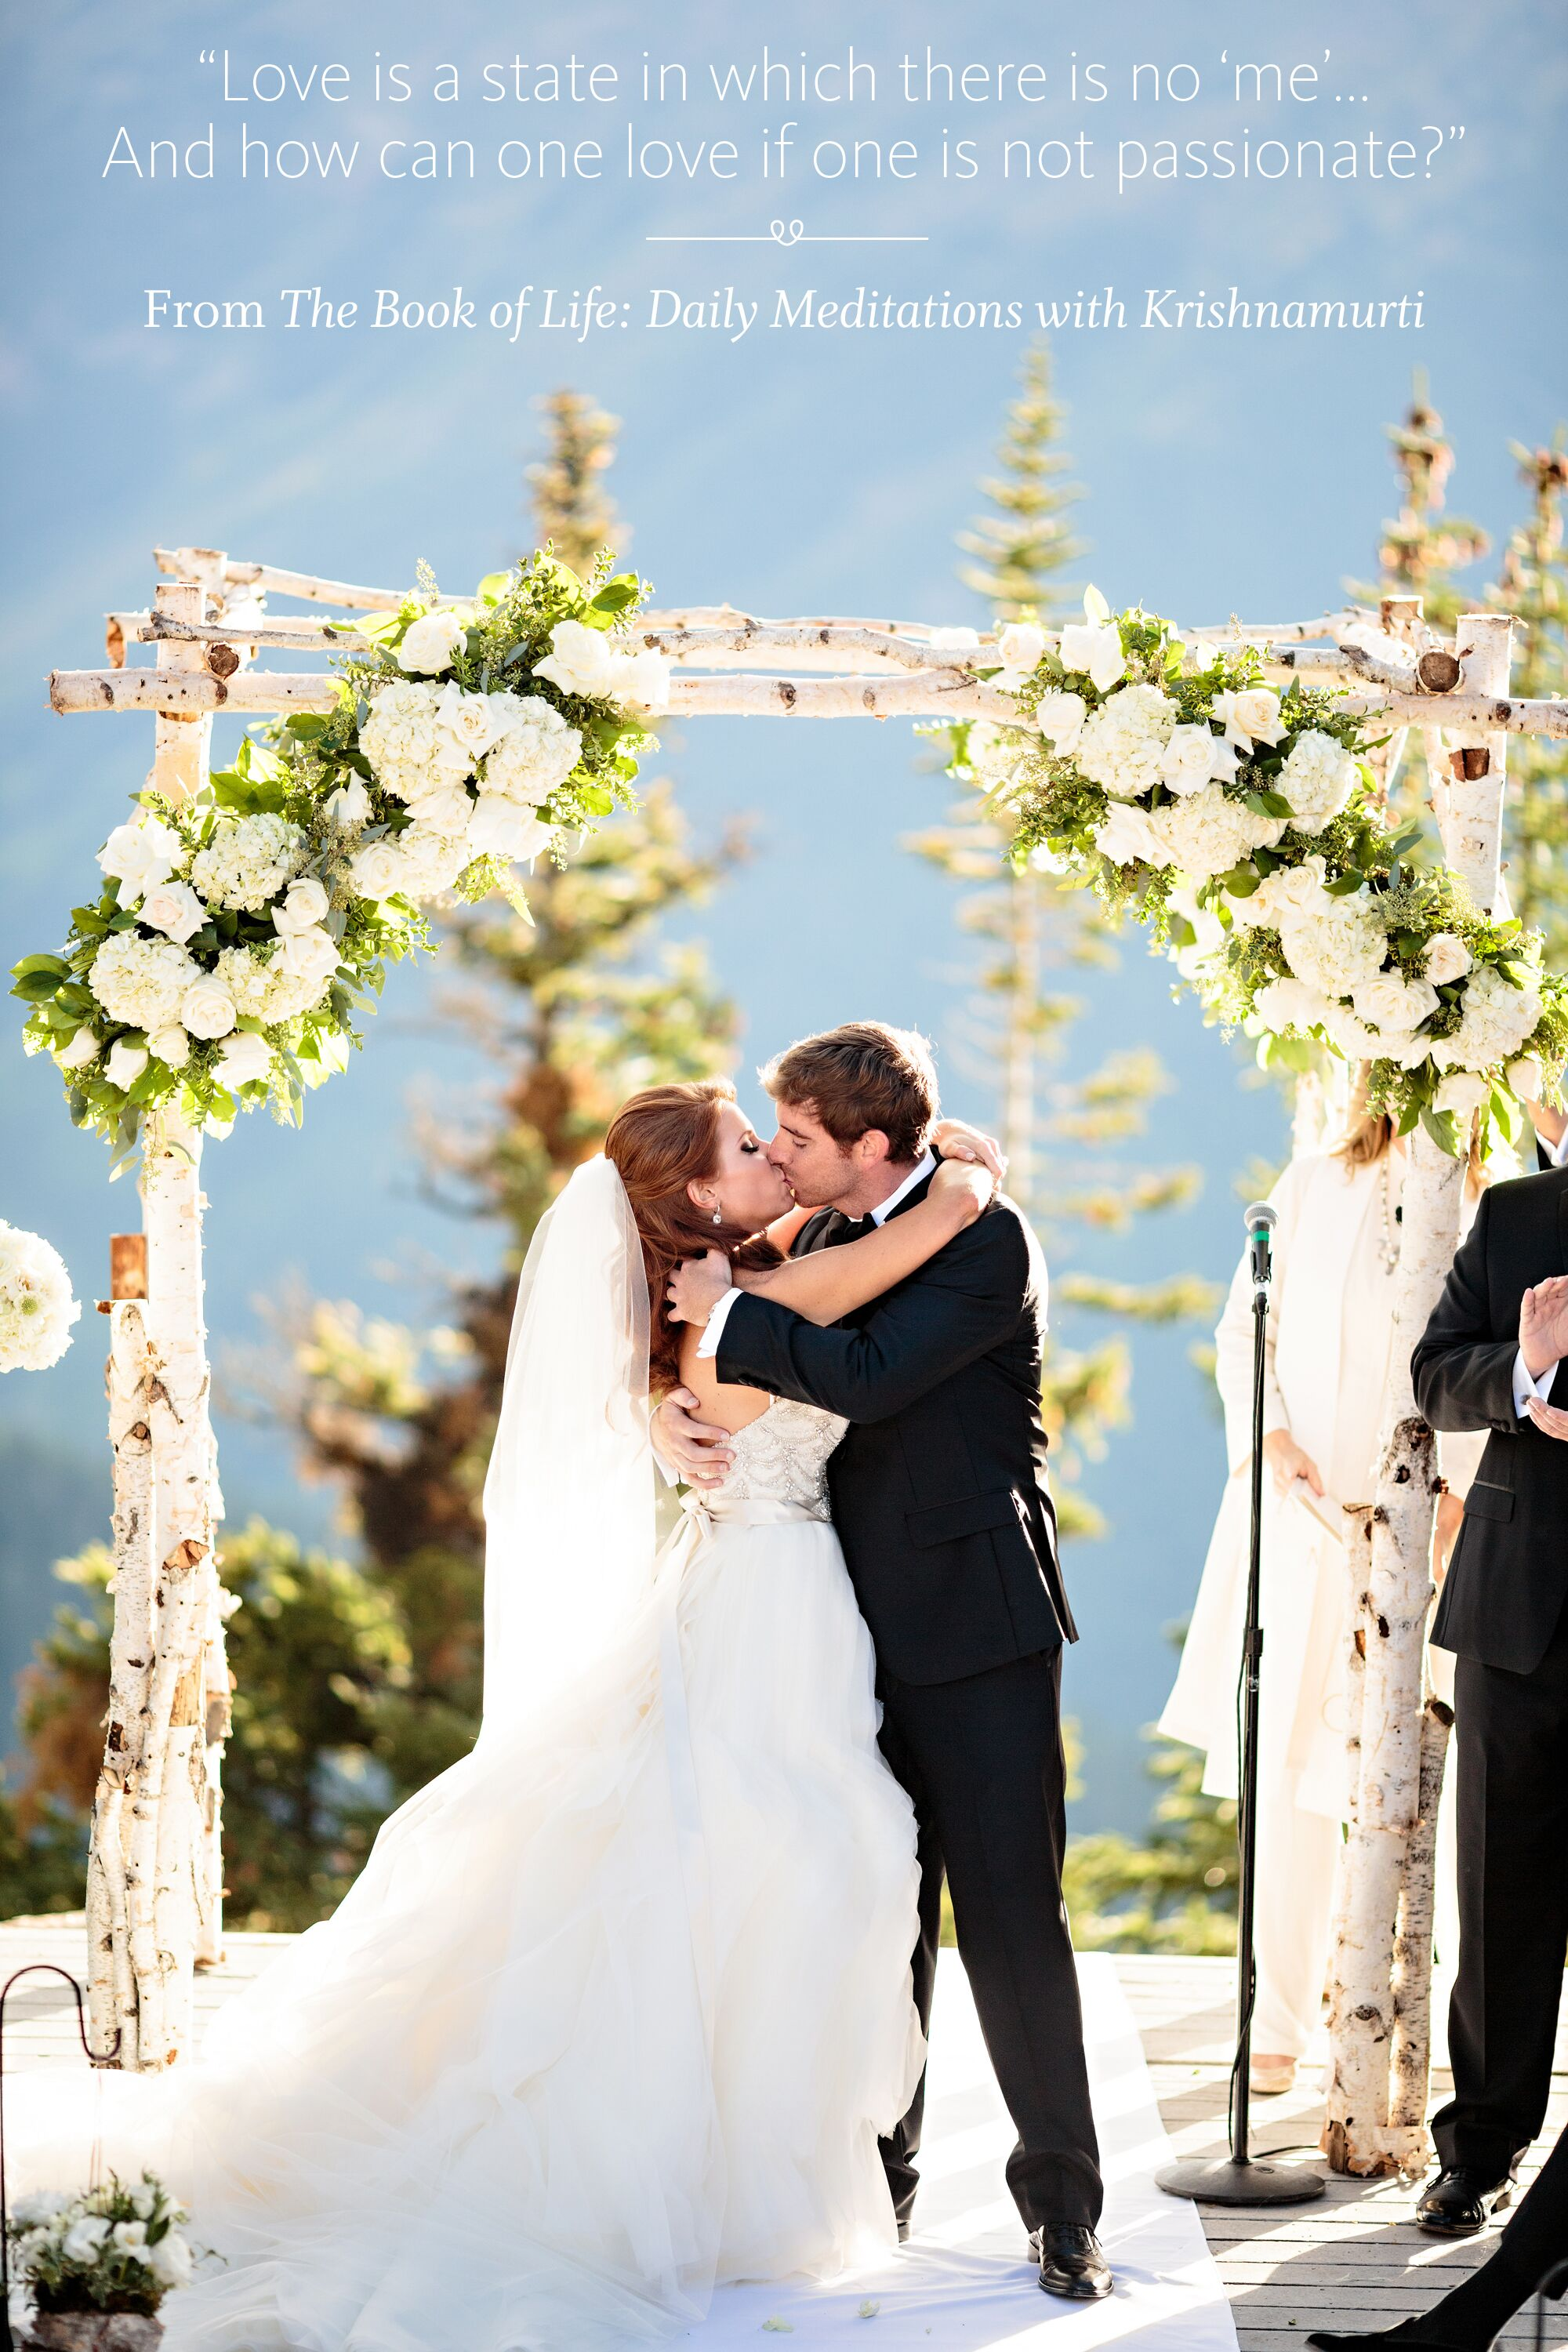 20 realistic vows that I would like to hear at my wedding